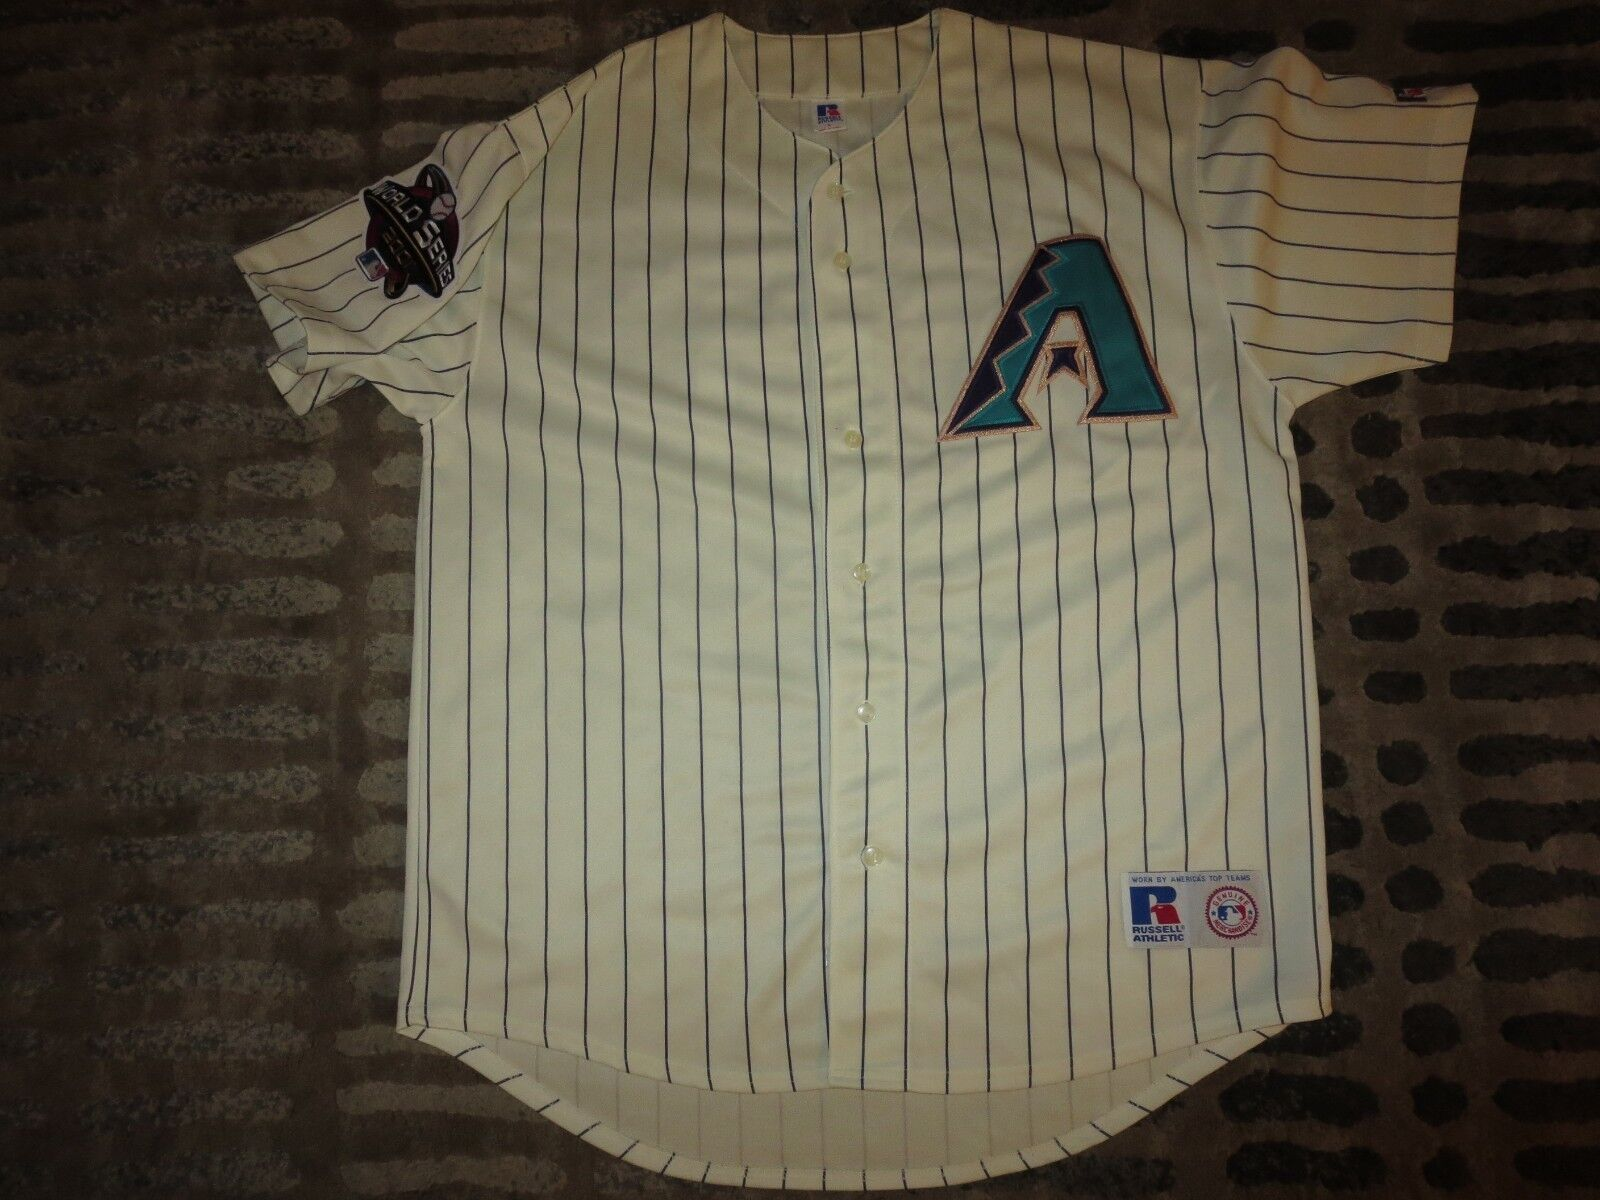 Luis Gonzalez  20 Arizona Reverso Diamantes